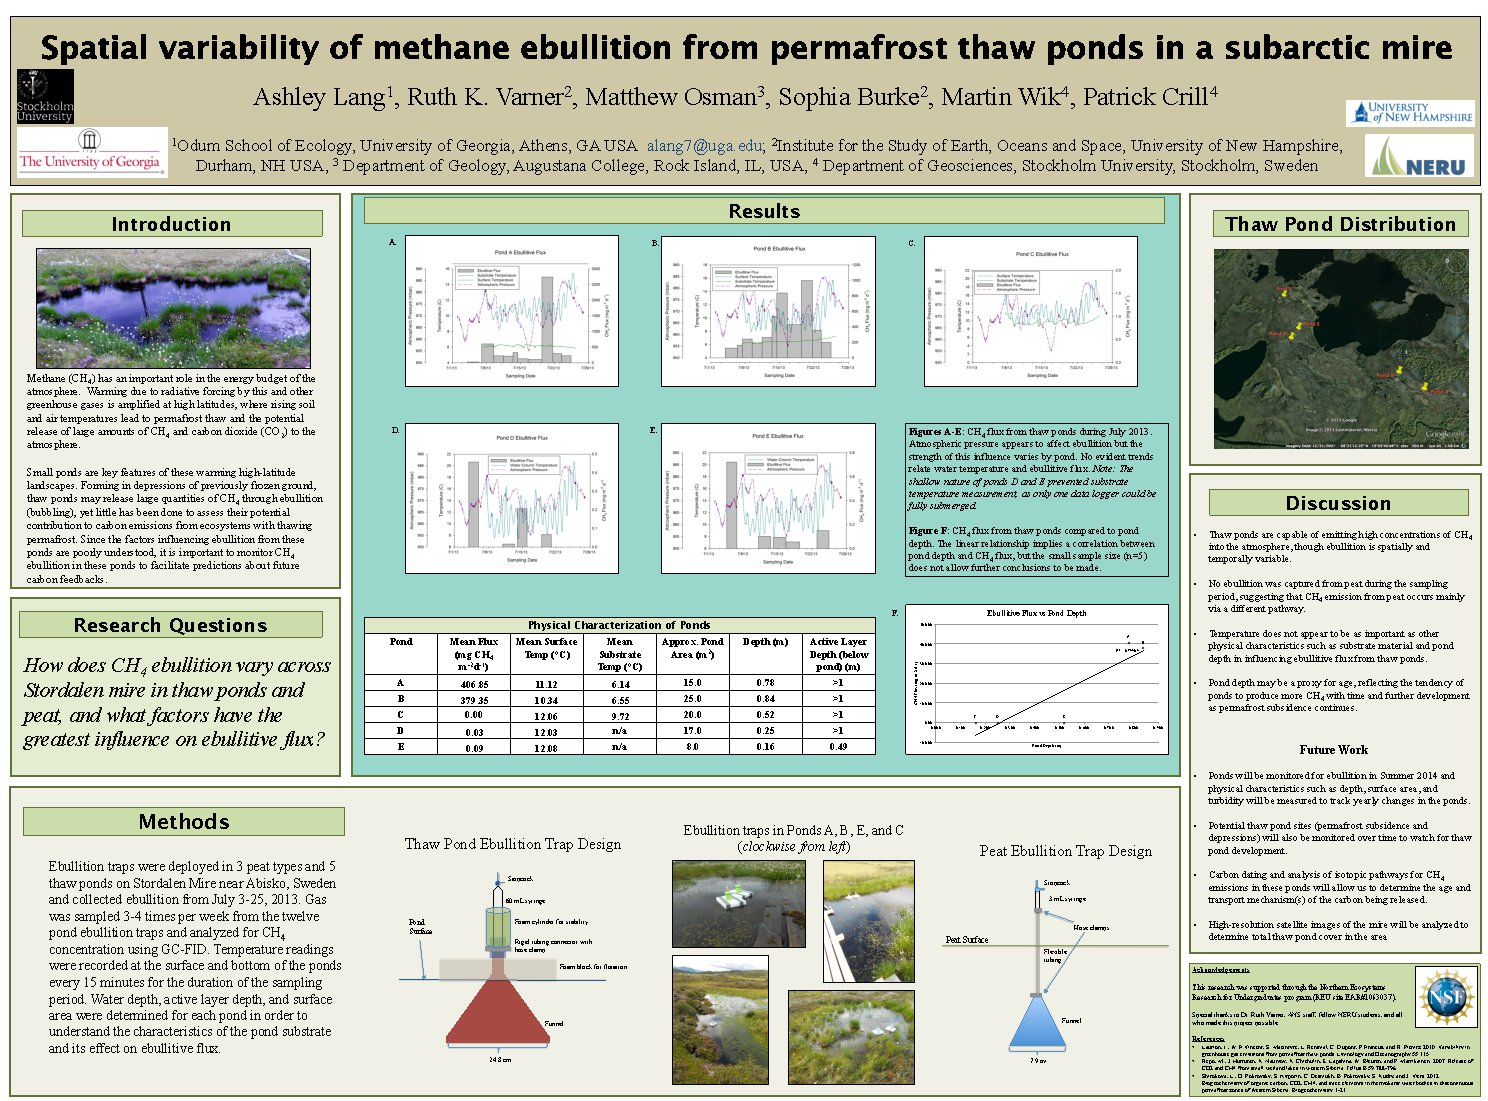 Spatial Variability Of Methane Ebullition From Permafrost Thaw Ponds In A Subarctic Mire by alang7